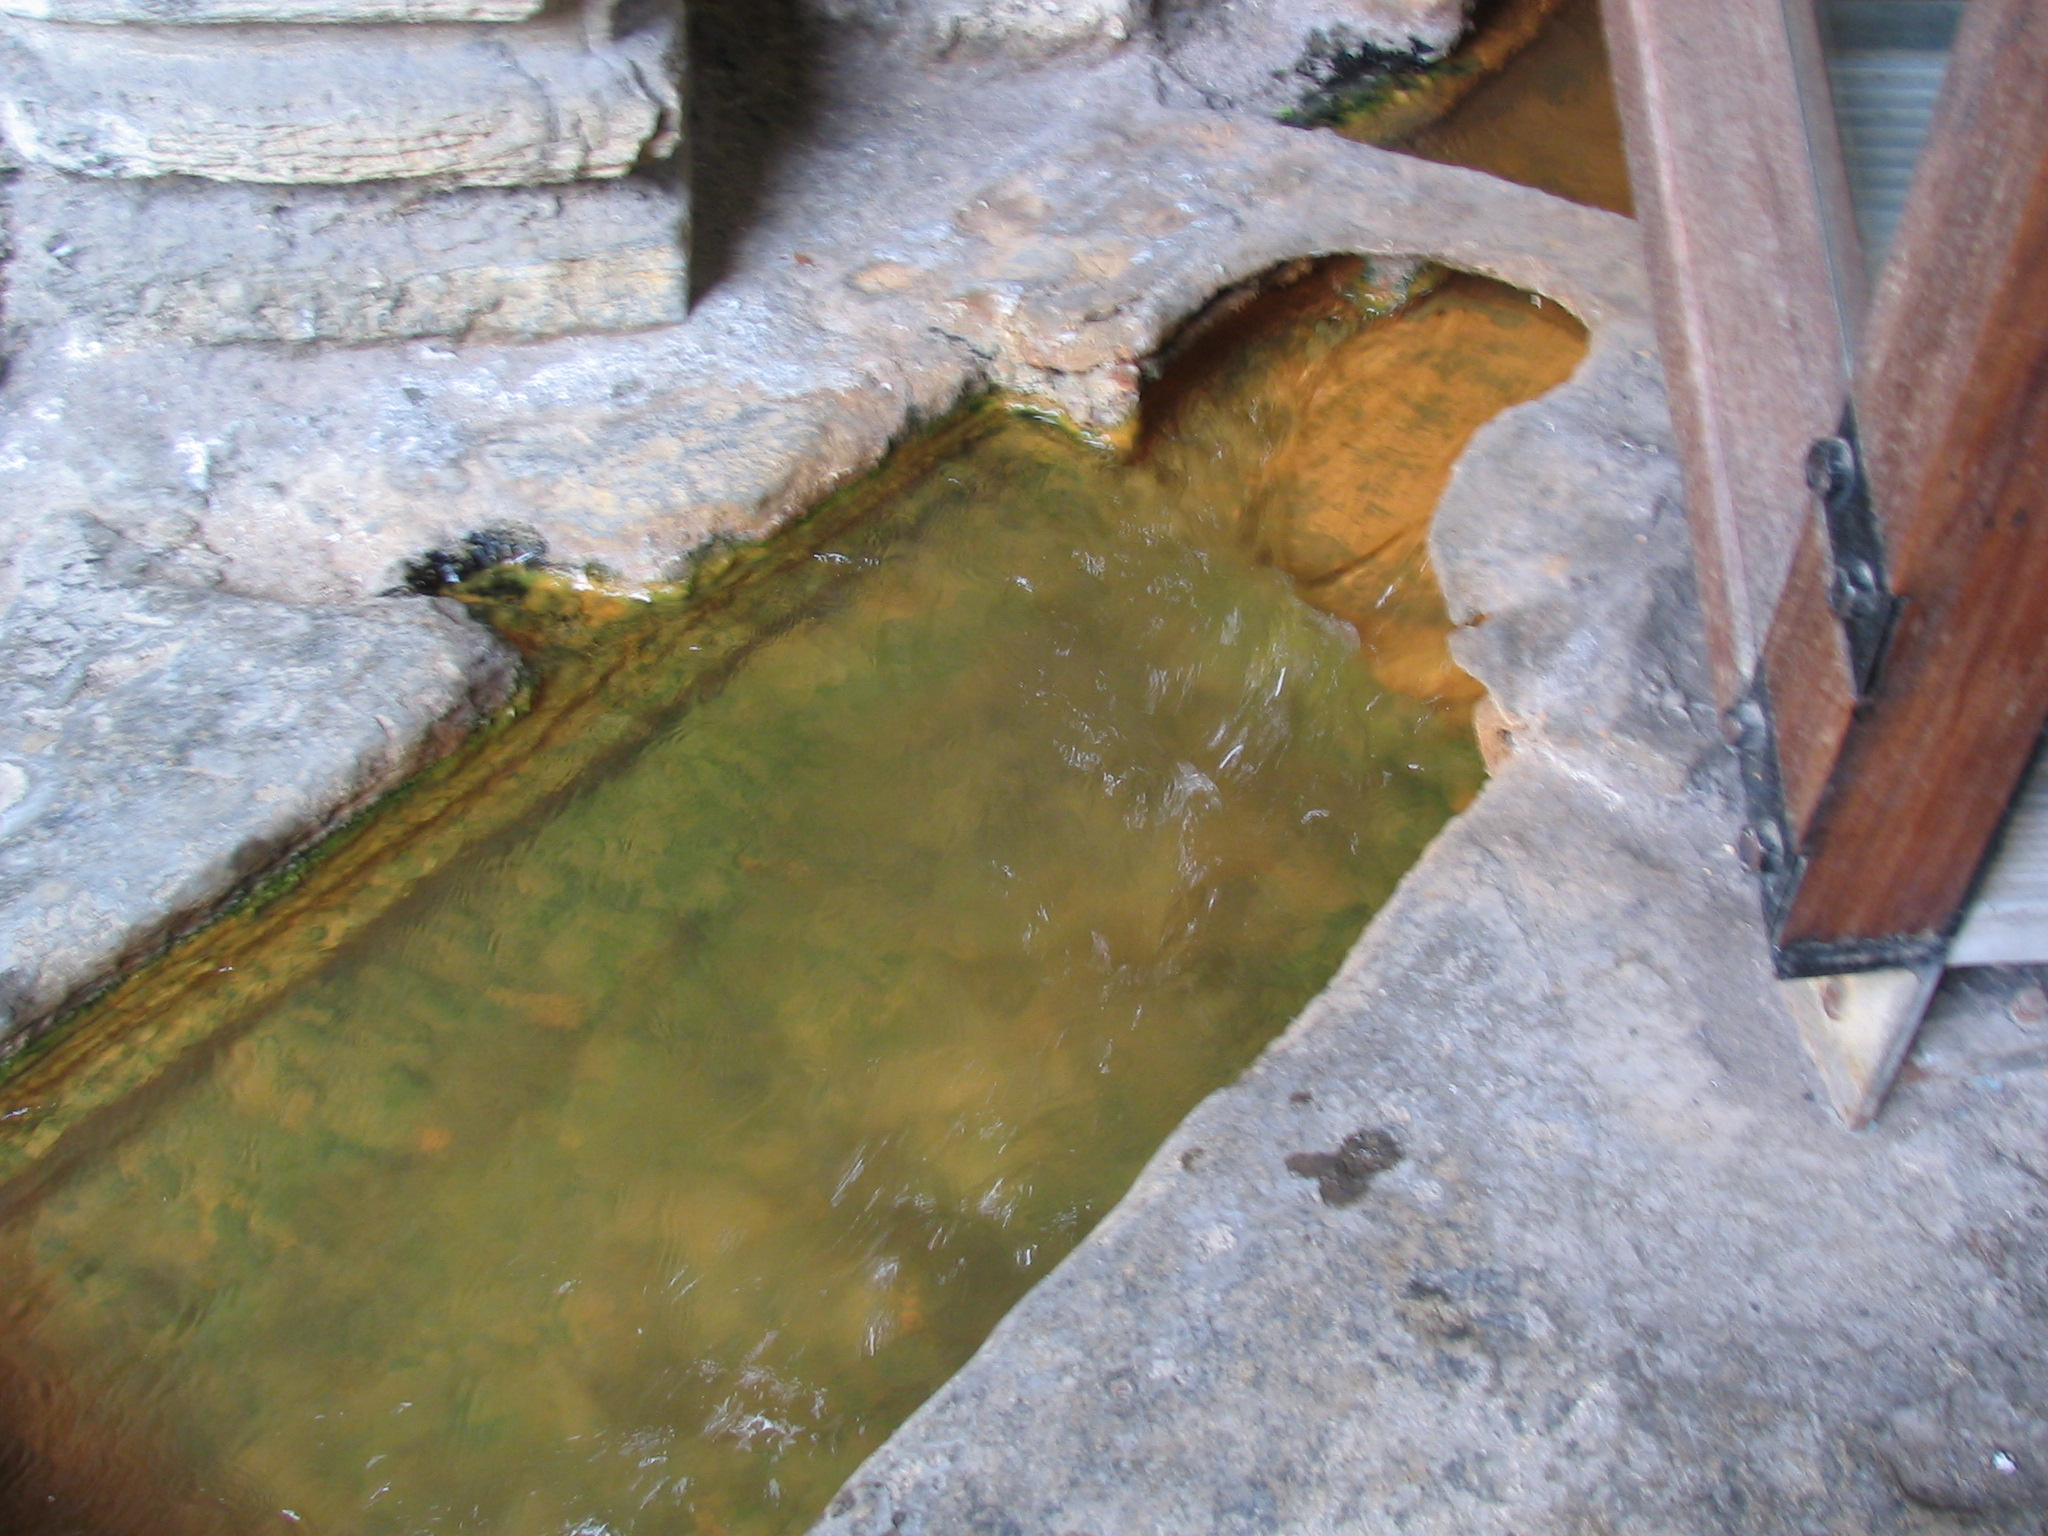 Water from the Hot Springs